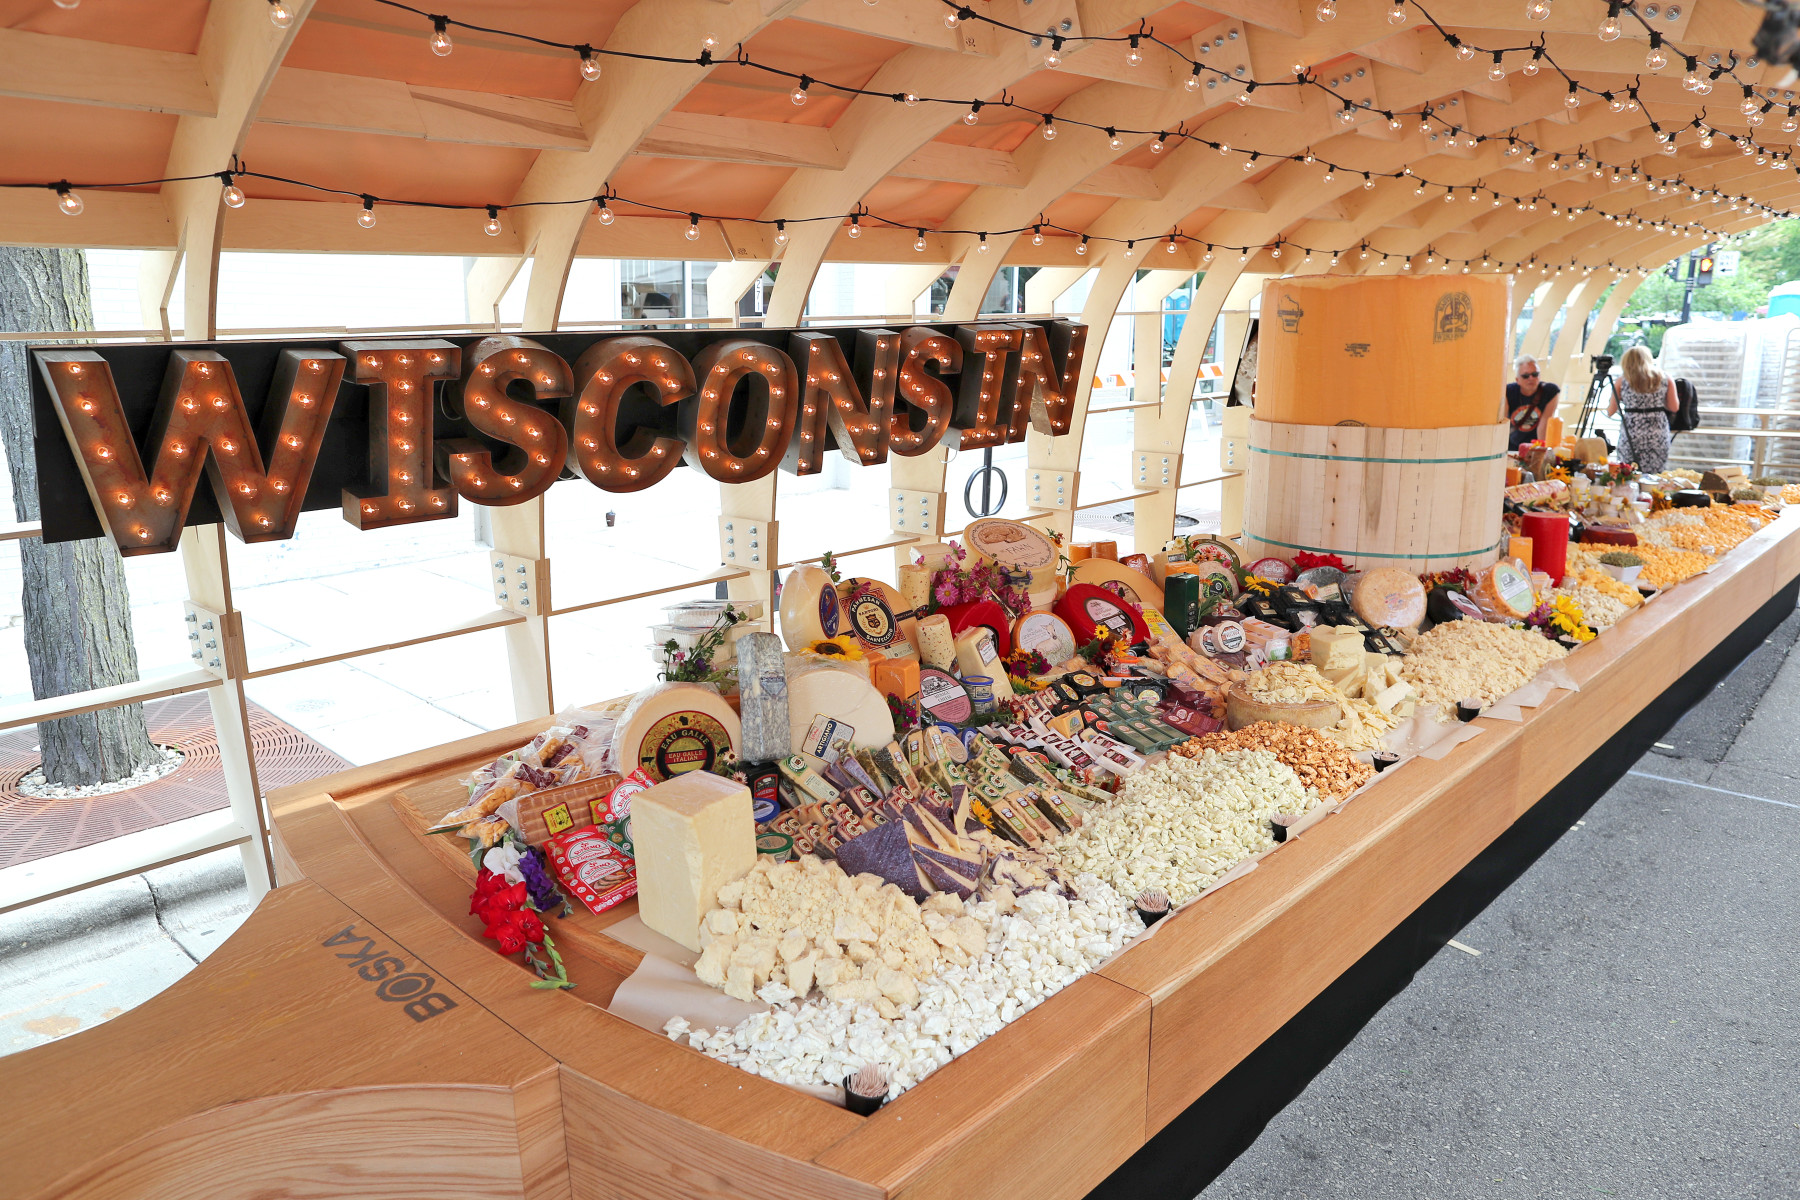 during a Guinness World Records winning attempt at the worlds largest cheeseboard in downtown Madison, Wis., on Wednesday, Aug. 1. The final weight of the cheese on the board came to 4,437 pounds.